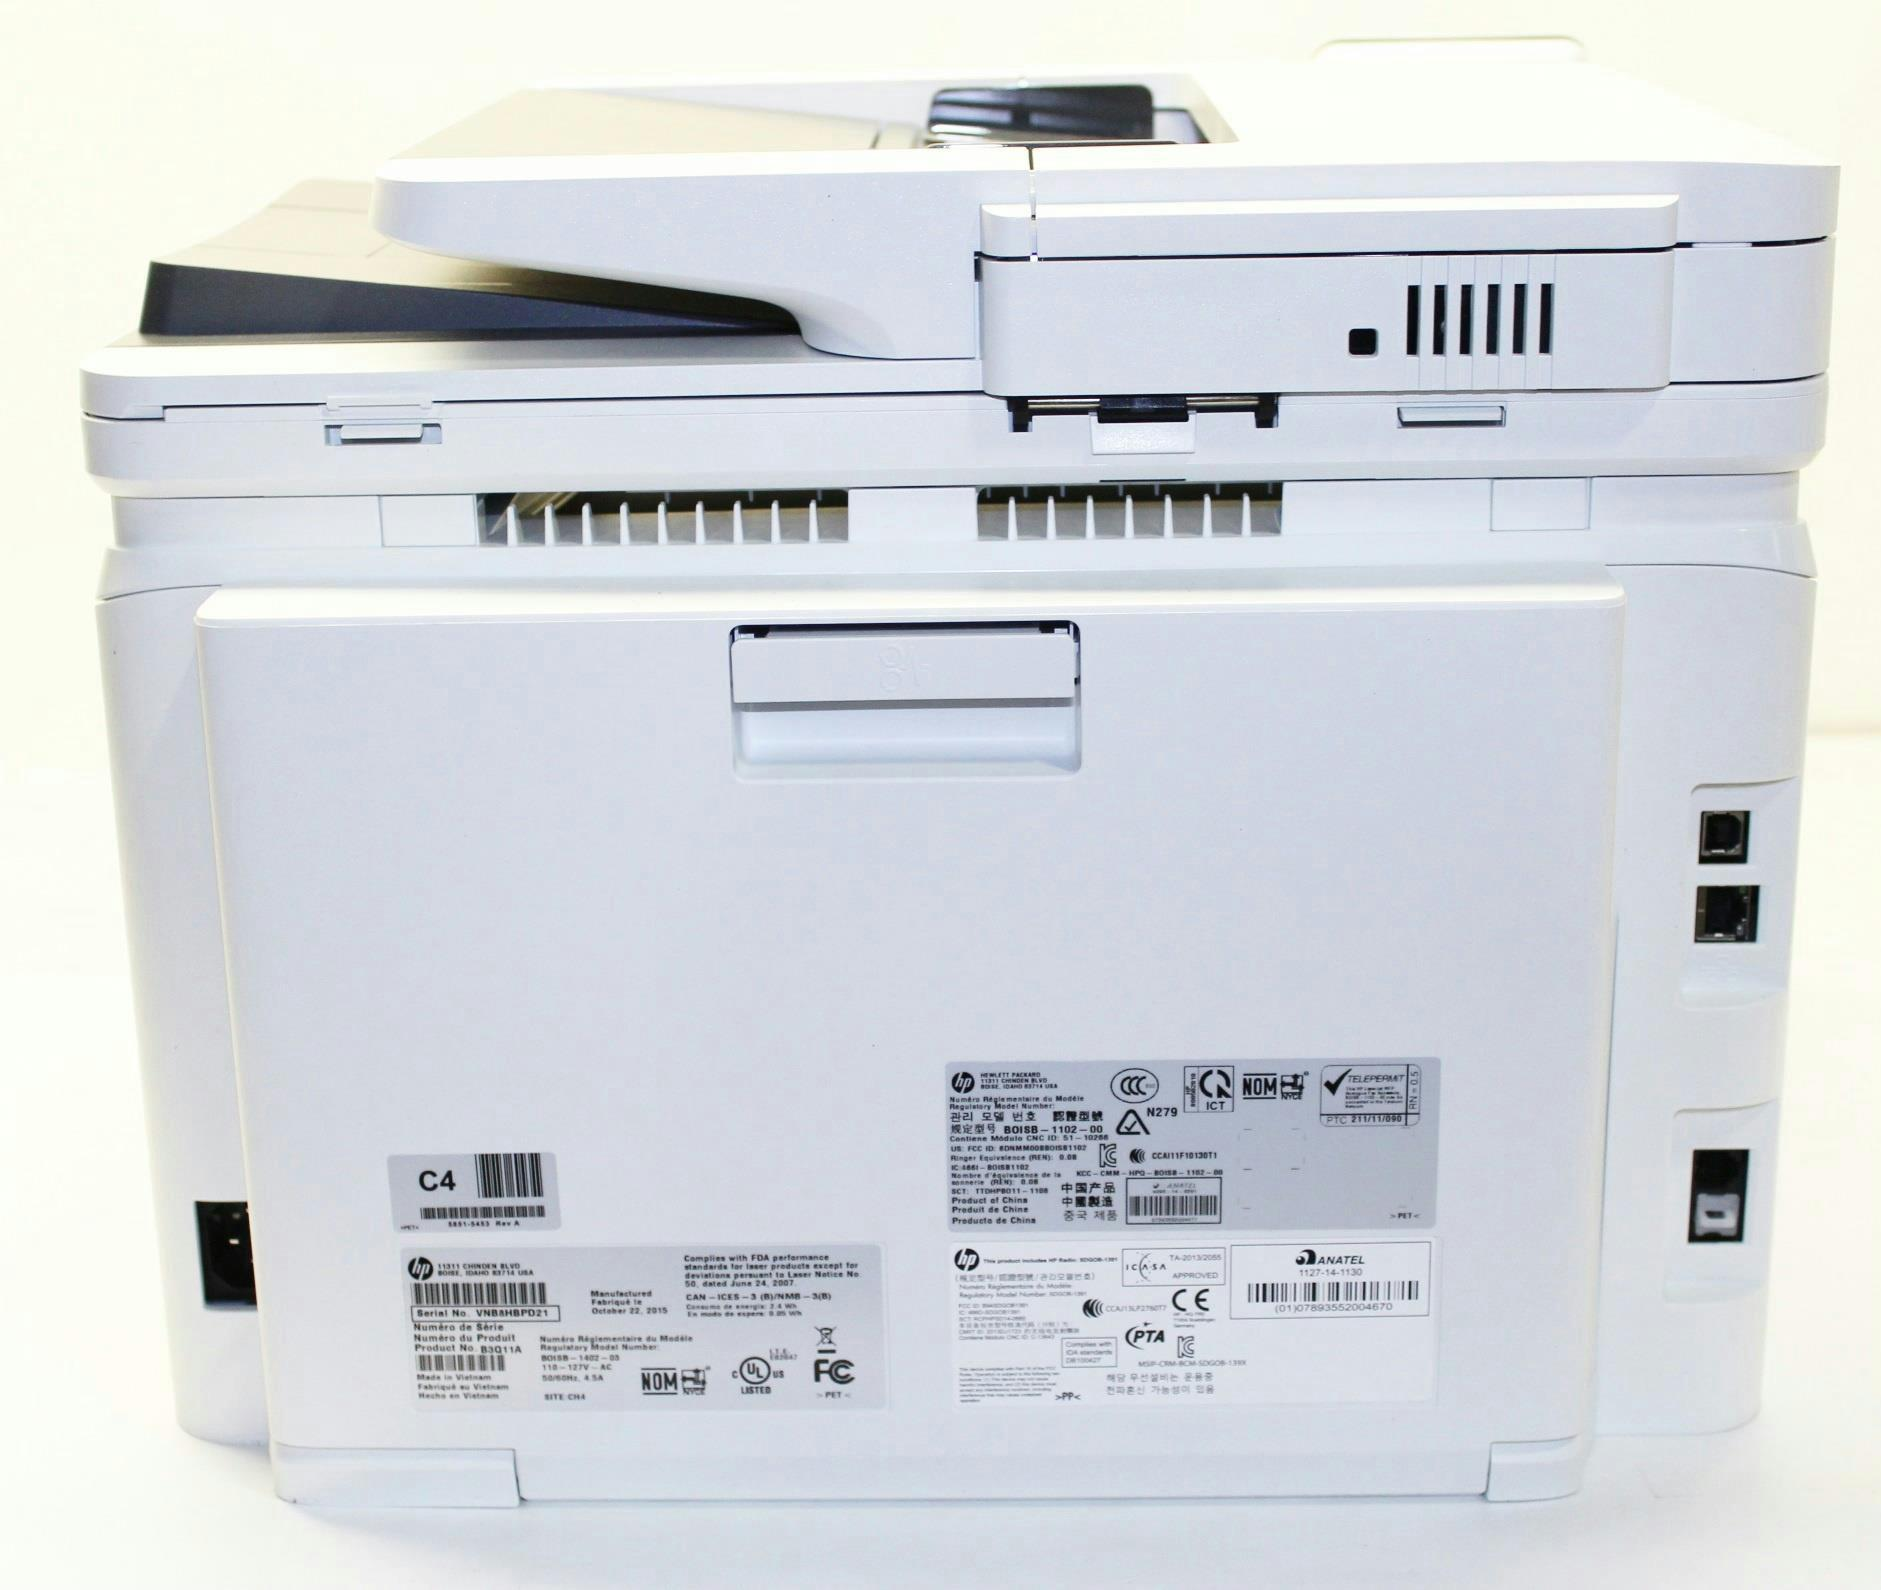 hp color laserjet pro mfp m277dw printer b3q11a bgj for parts 800142922 ebay. Black Bedroom Furniture Sets. Home Design Ideas